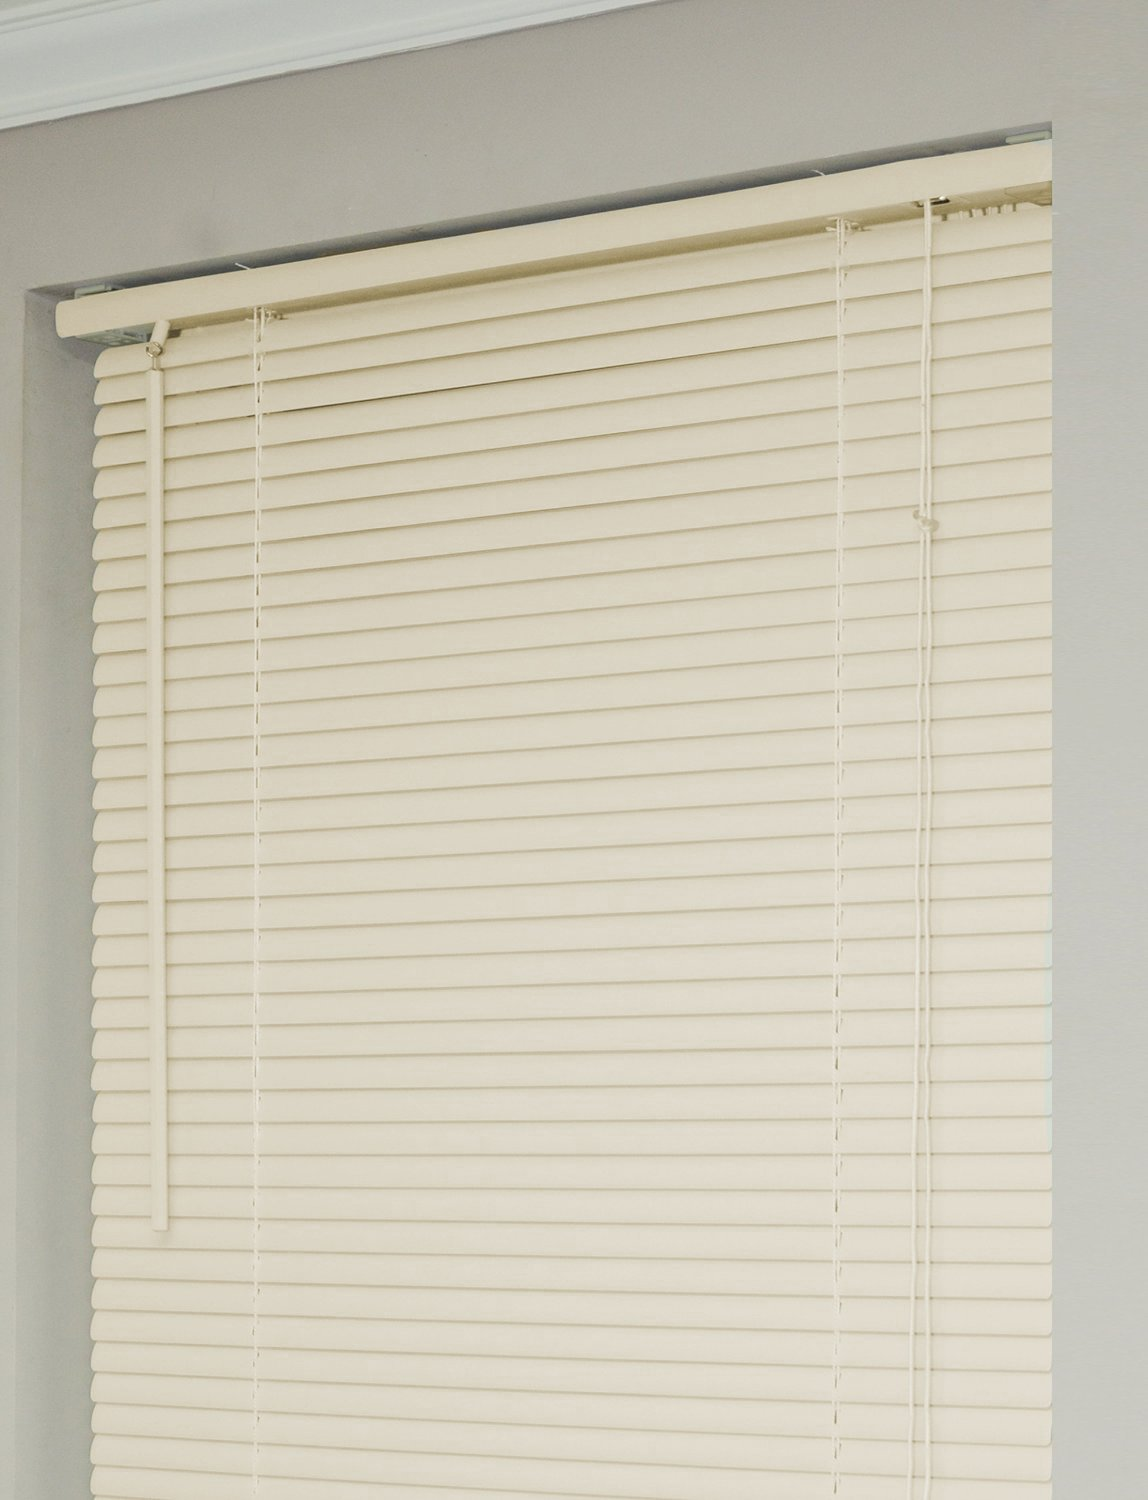 New 5th Ave Collection Alabaster Vinyl 1\ Mini Blinds - 32\ Wide x 72\ Long Naturally Home